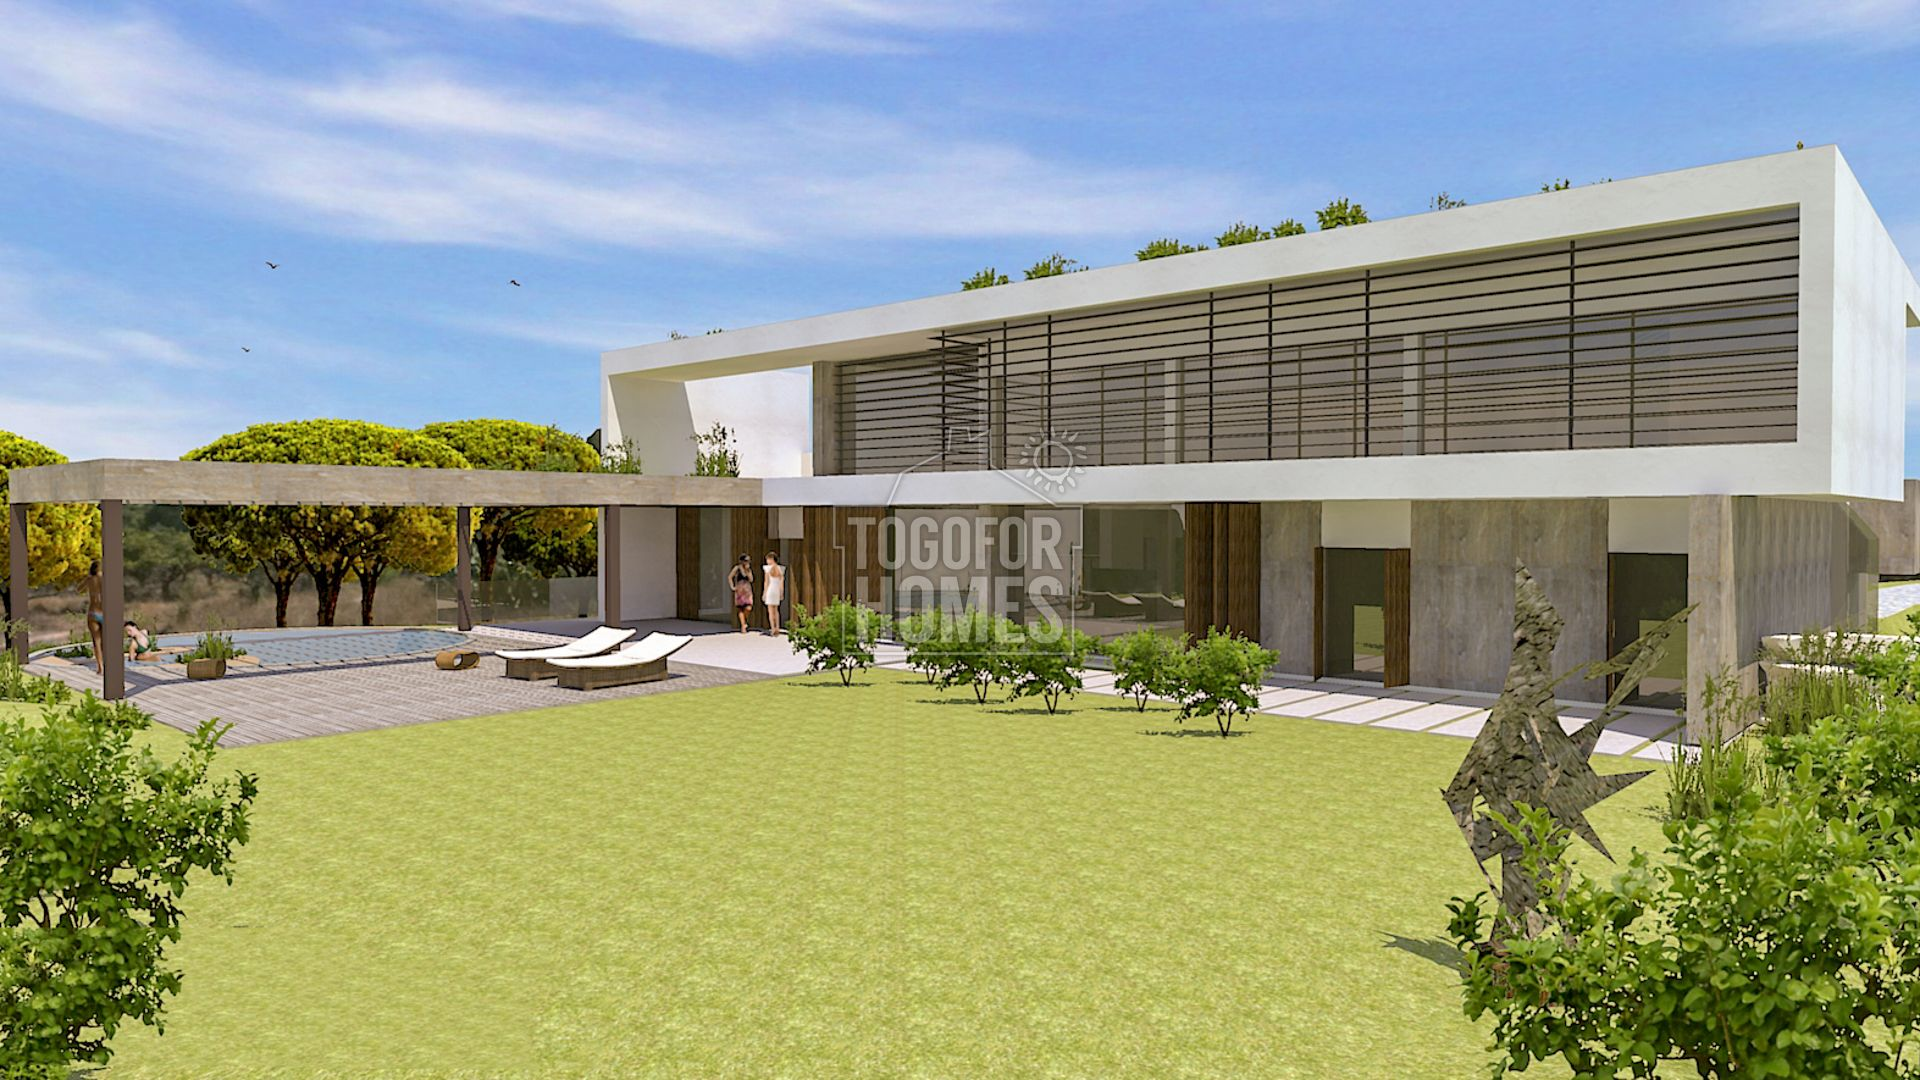 S5082 - Excellent Opportunity-11,820m² Plot with Building Permission Close to Quinta do Lago